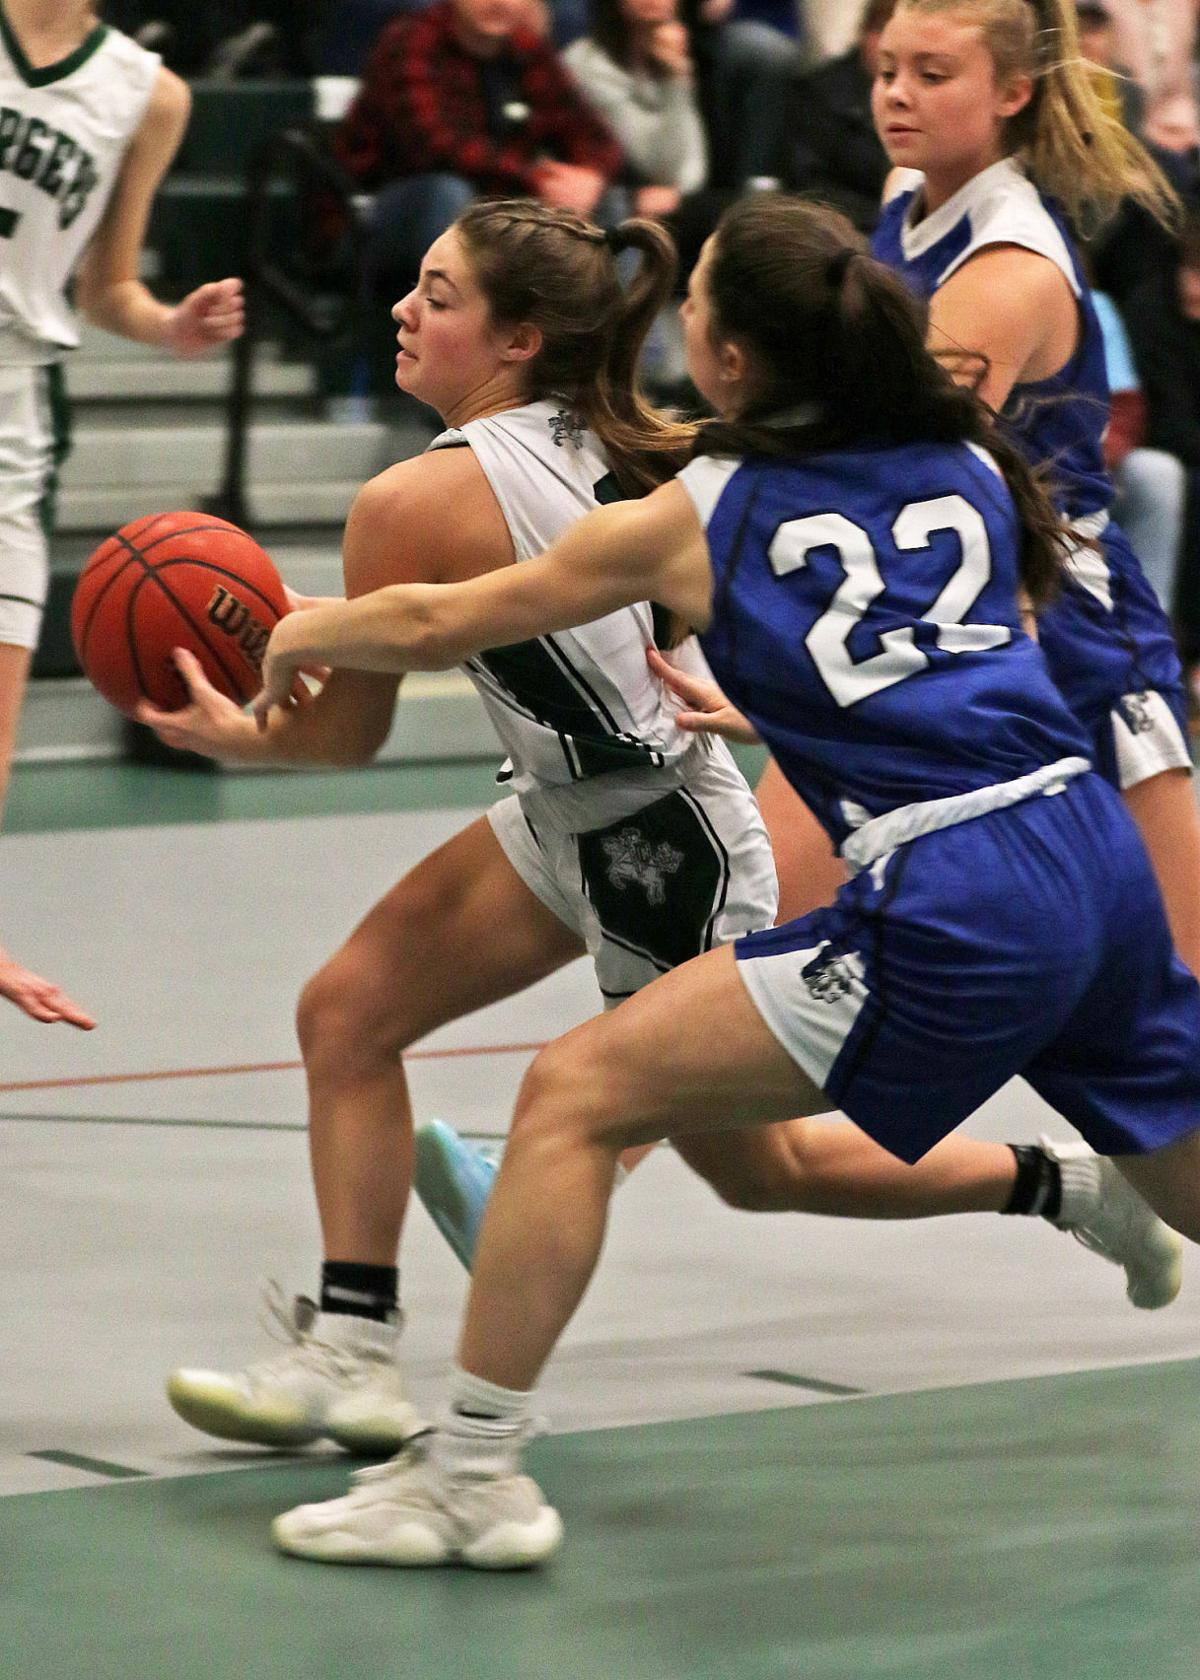 Chariho's Spencer Shiels drives past Scituate's Madison Medbury during Tuesday's Division II game. | Jackie L. Turner, Special to The Sun.